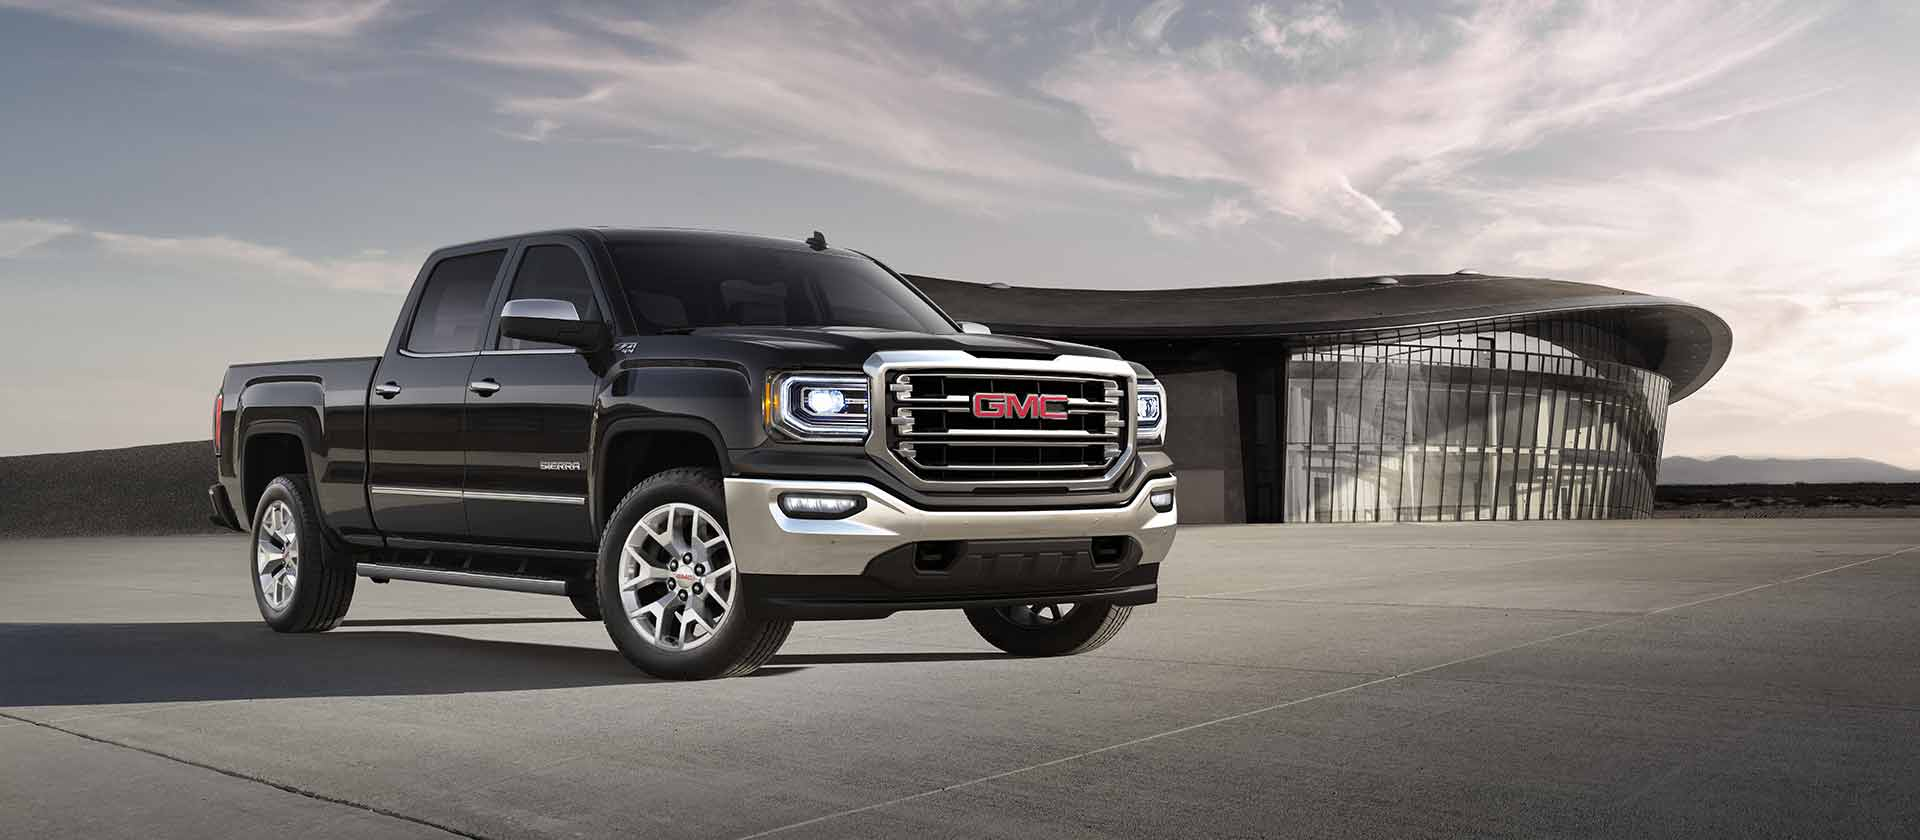 buick cadillac blog gmc exterior sierra palmen options color